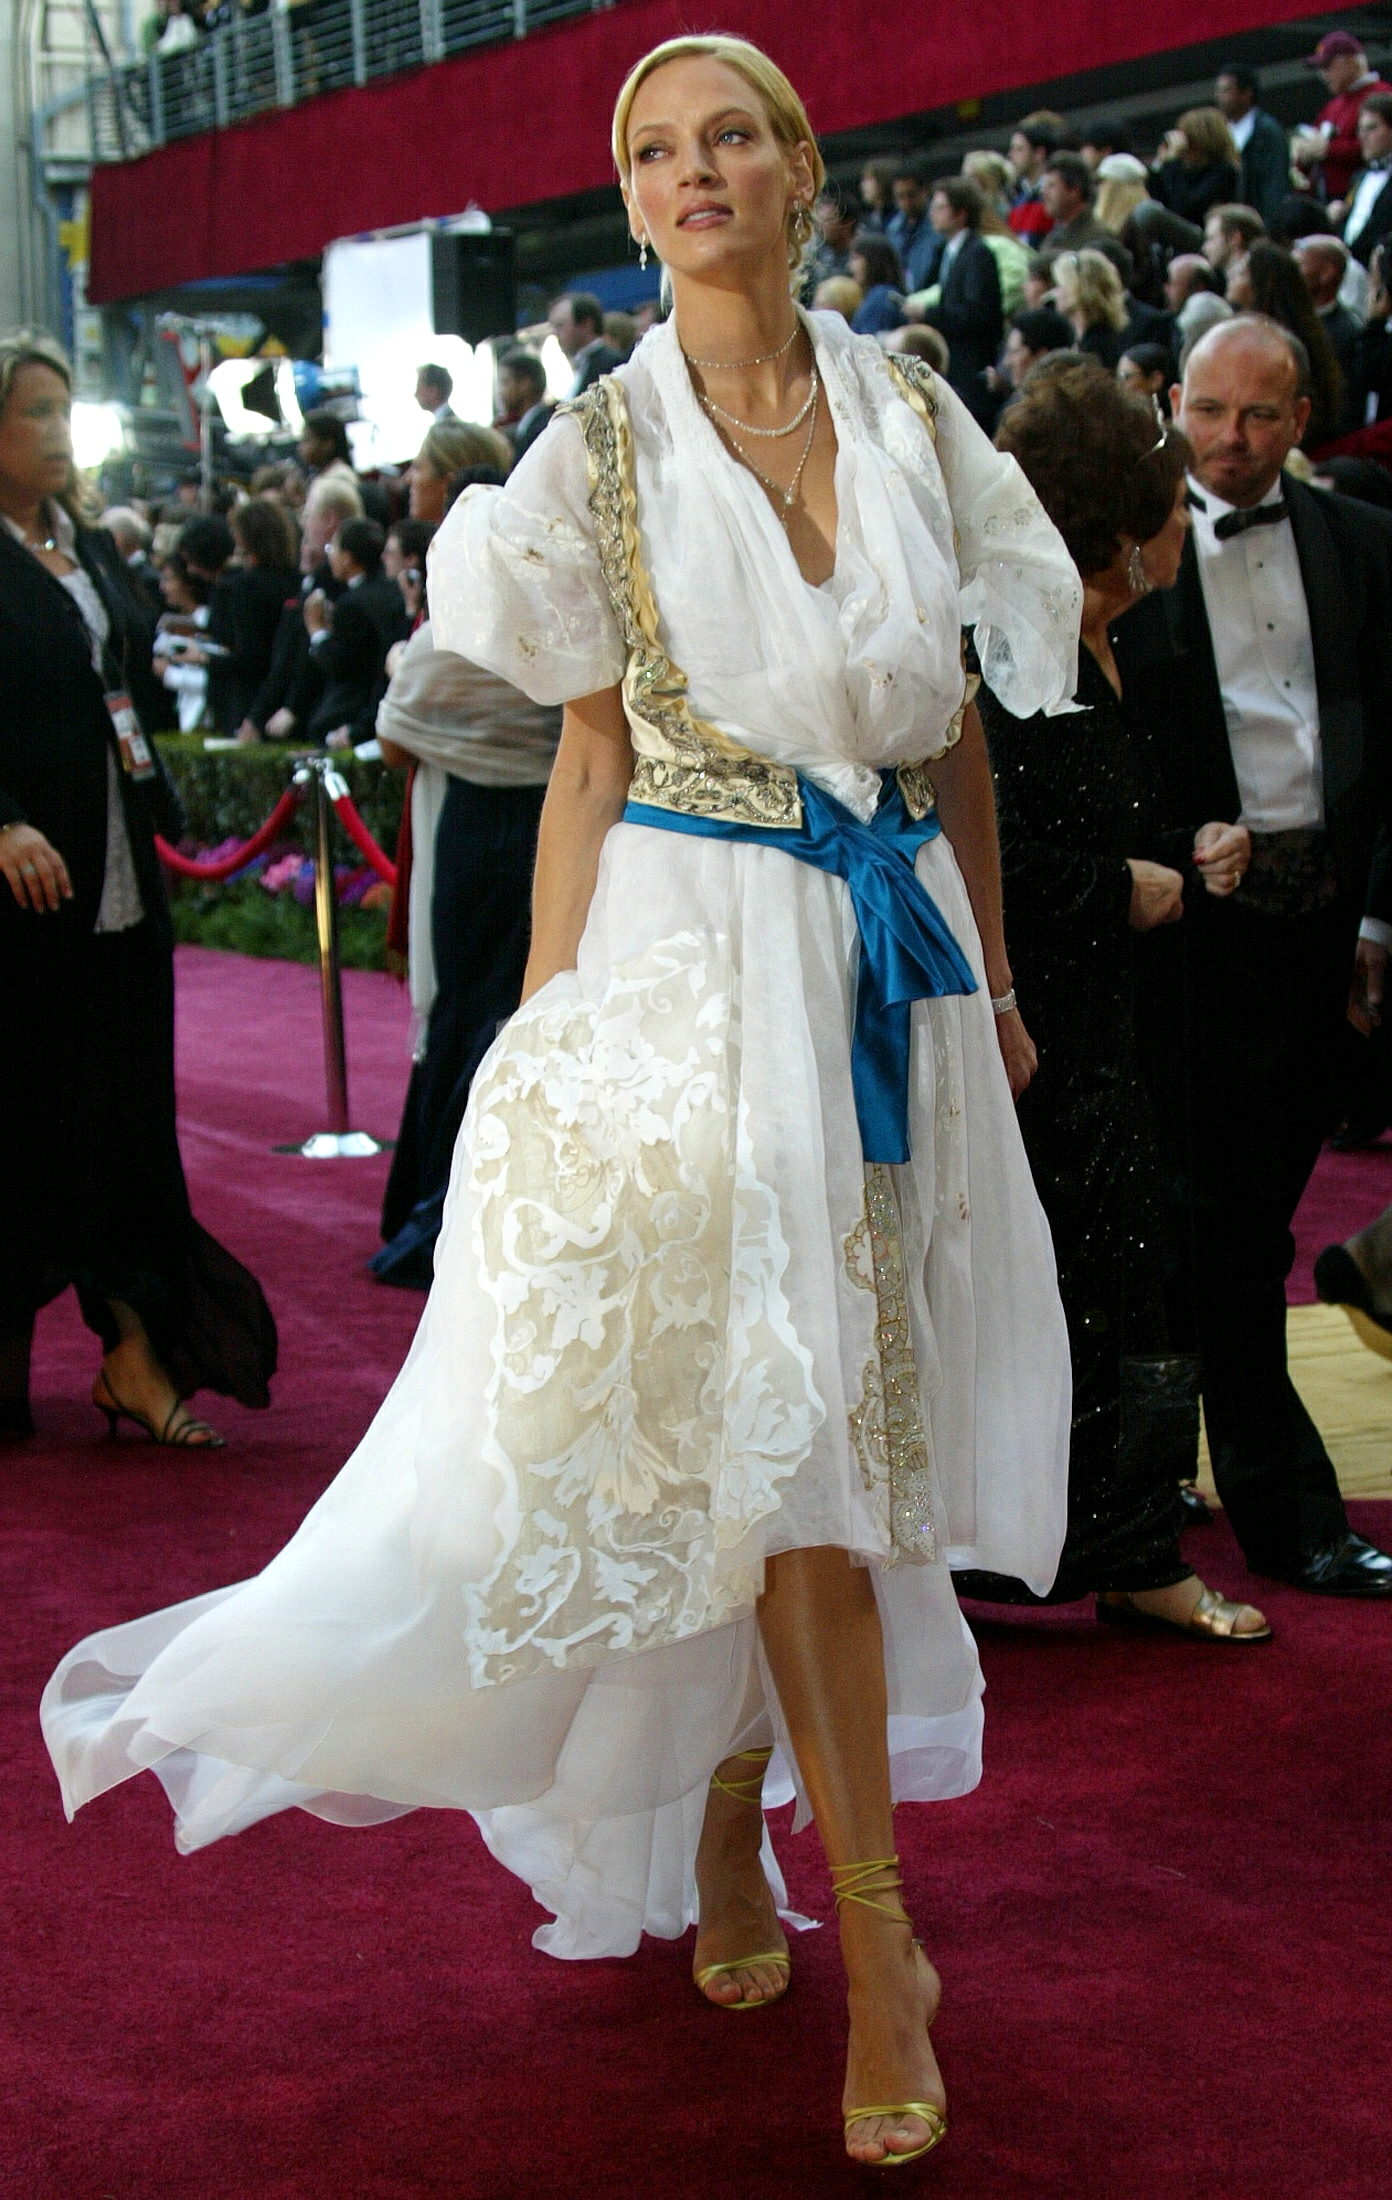 Actress Uma Thurman arrives for the 76th annual Academy Awards at the Kodak Theatre in Hollywood, California February 29, 2004. - PBEAHUOKKAL